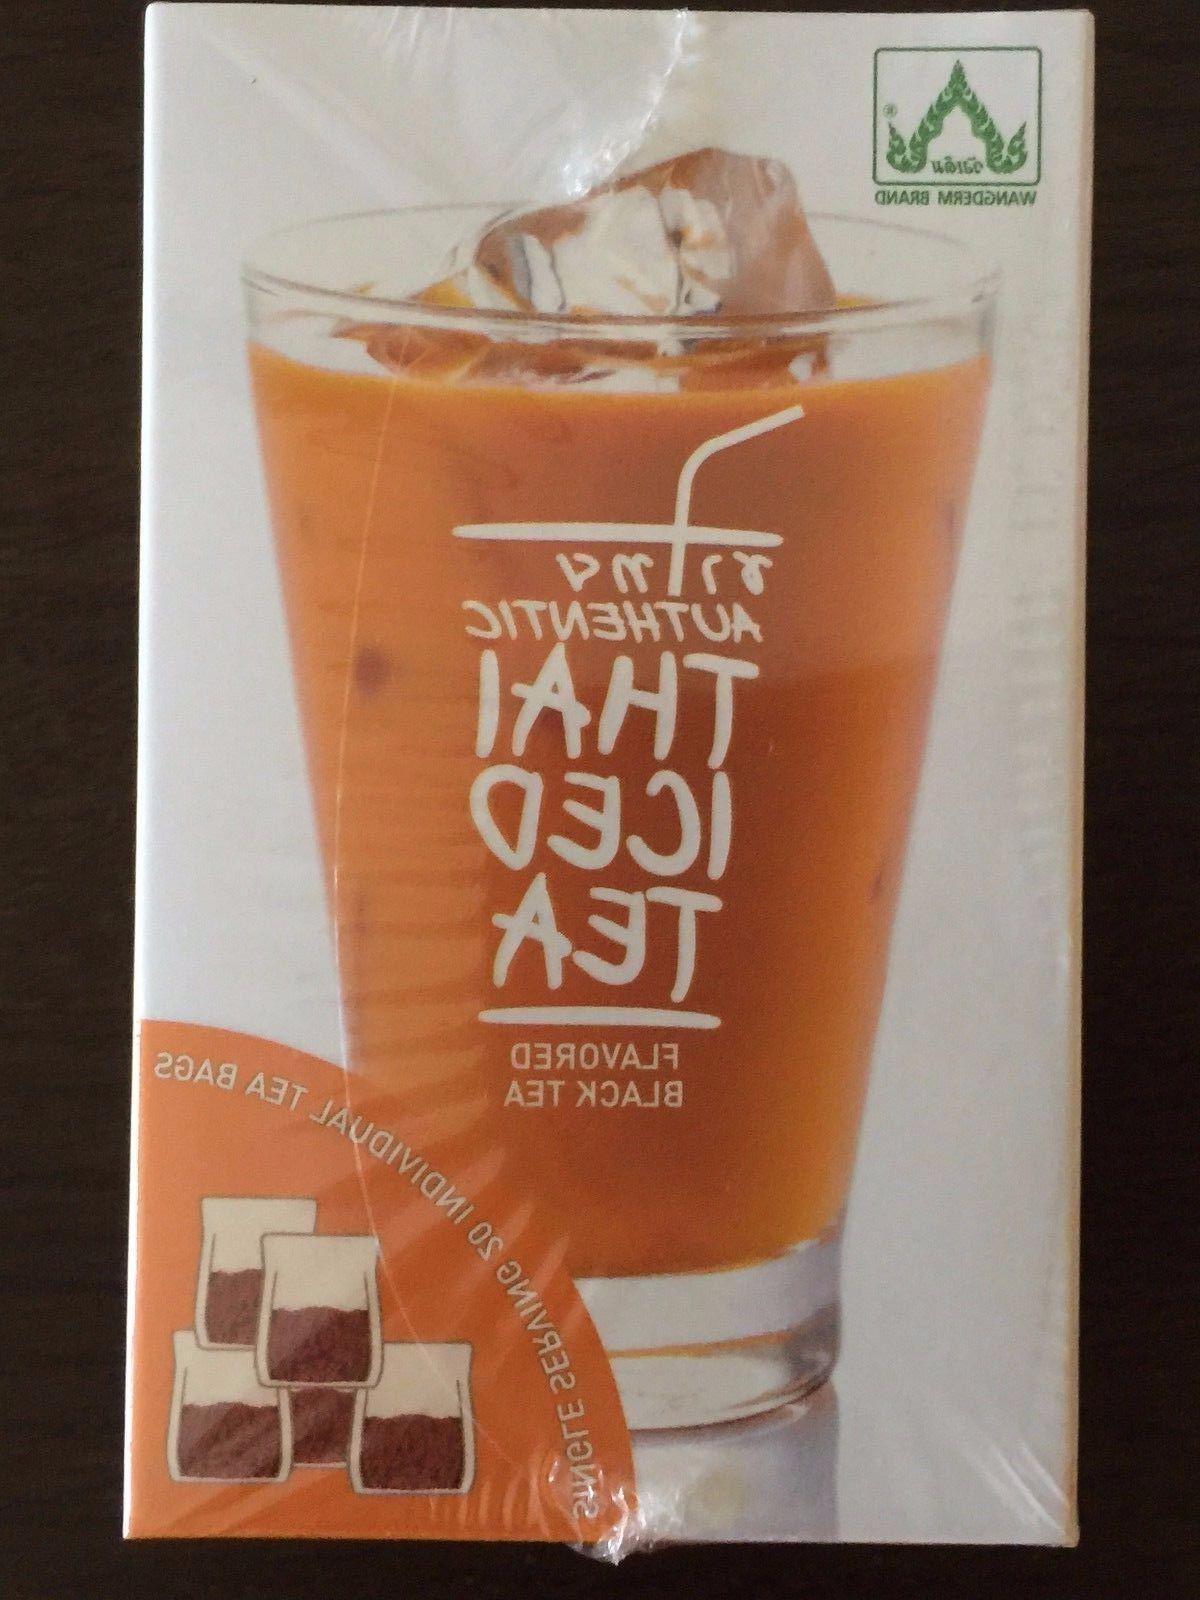 Authentic Thai Iced Tea Flavored Black Tea,20 tea bags New